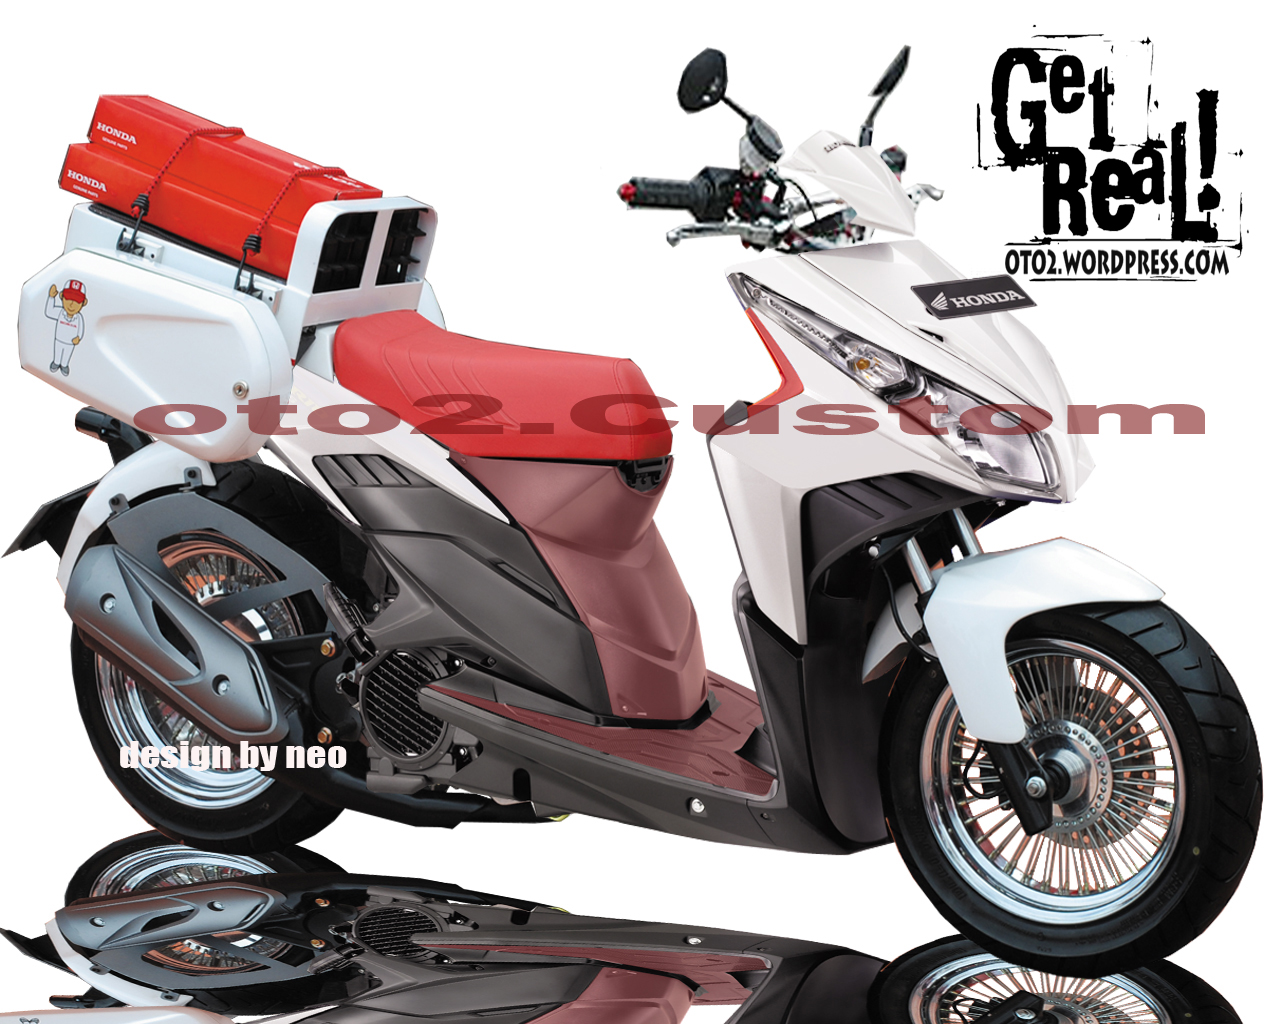 Download Ide Modifikasi Motor Vario Cbs 110 Terbaru Velgy Motor